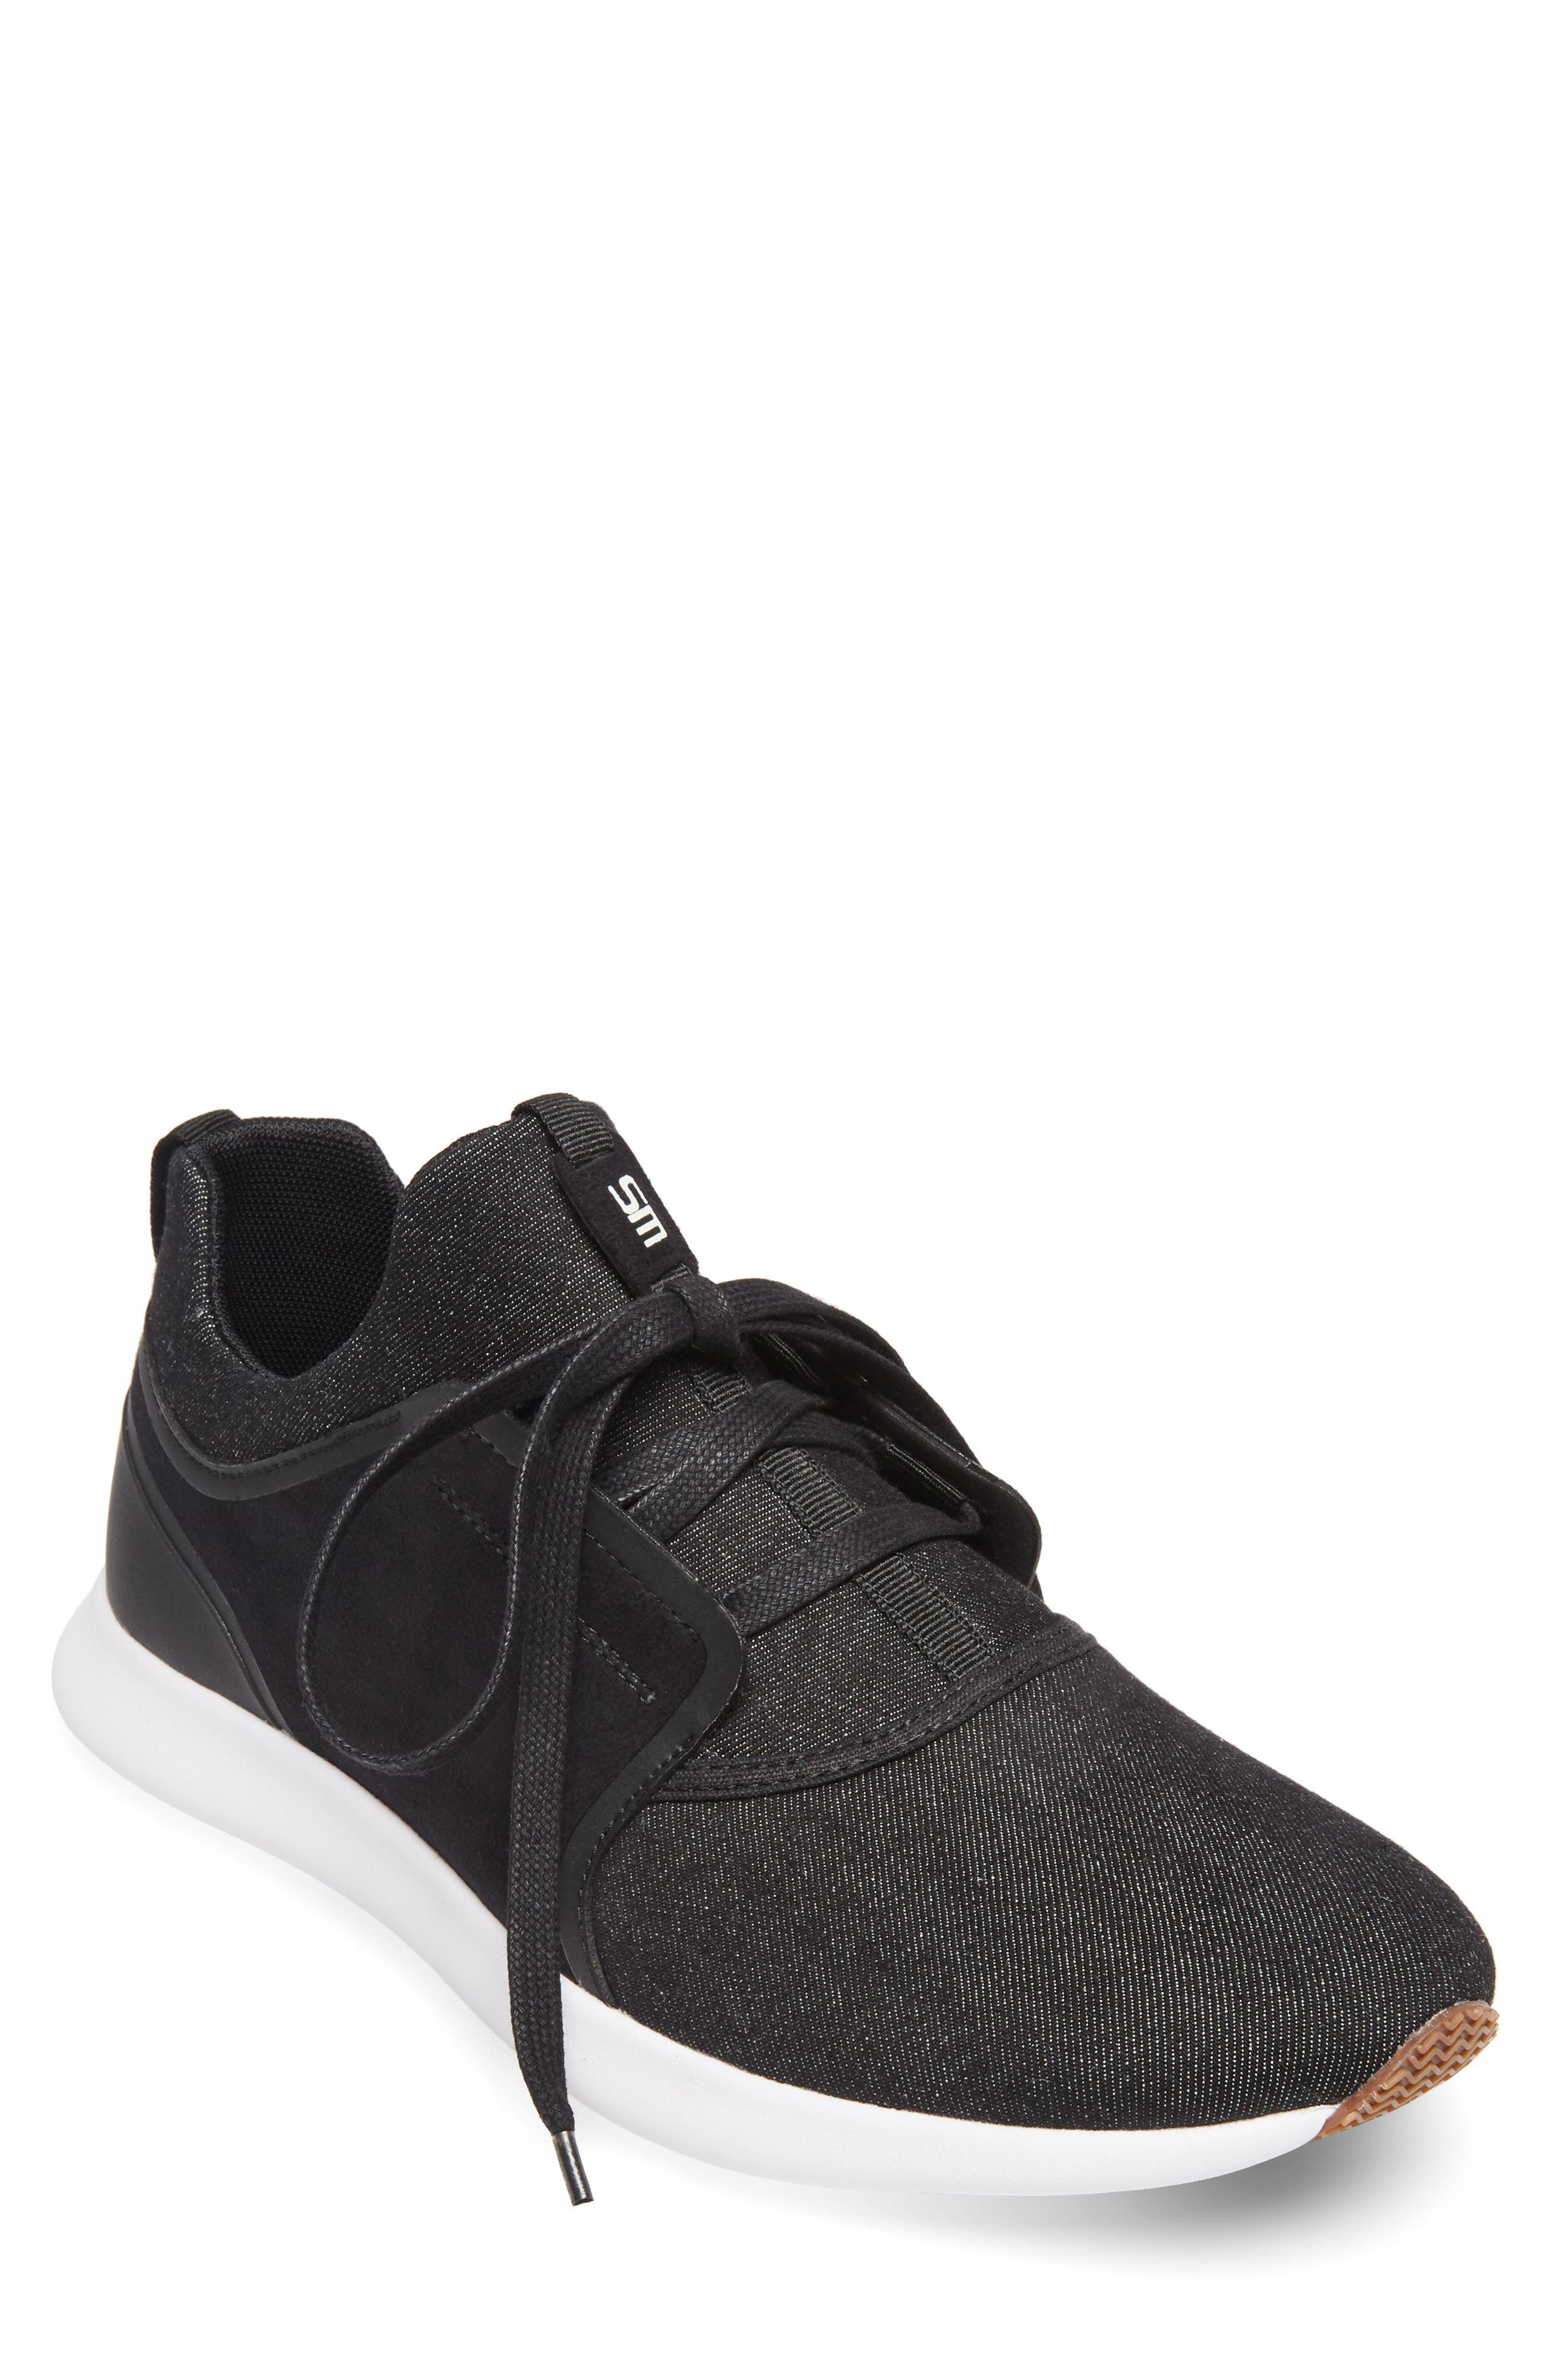 Barrett Sneaker,                         Main,                         color, 002